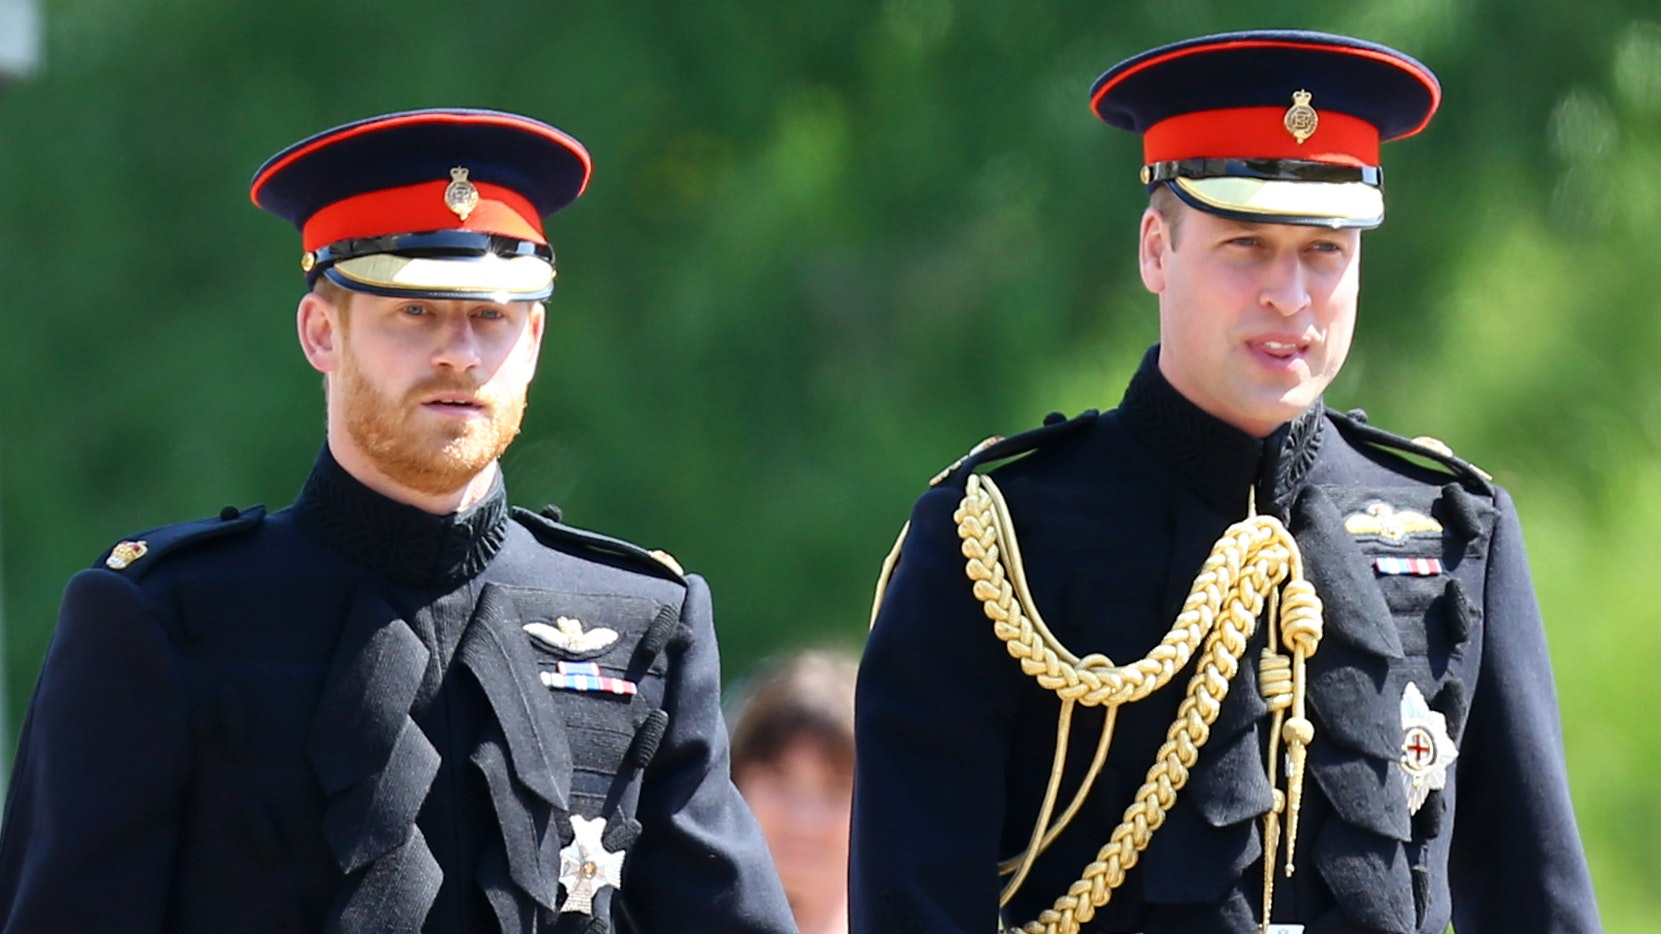 People called out Prince William's outfit for being that